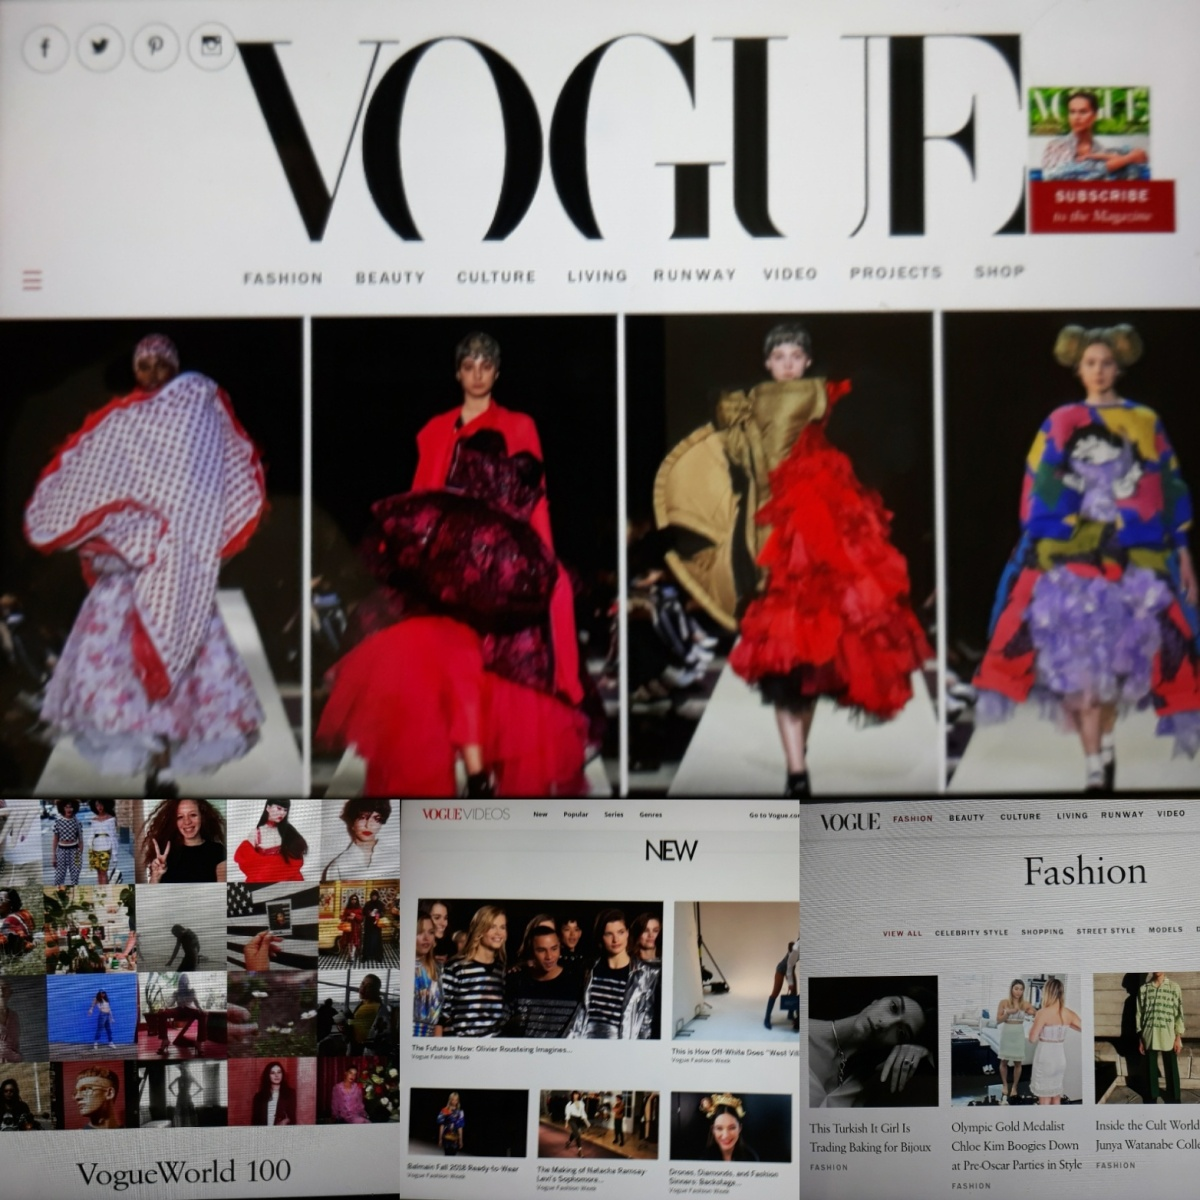 VOGUE NEWS&TRENDS. TOP&Famous People, VIDEOS, TOP 10 COLLECTIONS  FALL 2018, London&New York FASHION WEEK... 5.3.2018 HXSTYLE.NET HEINIS